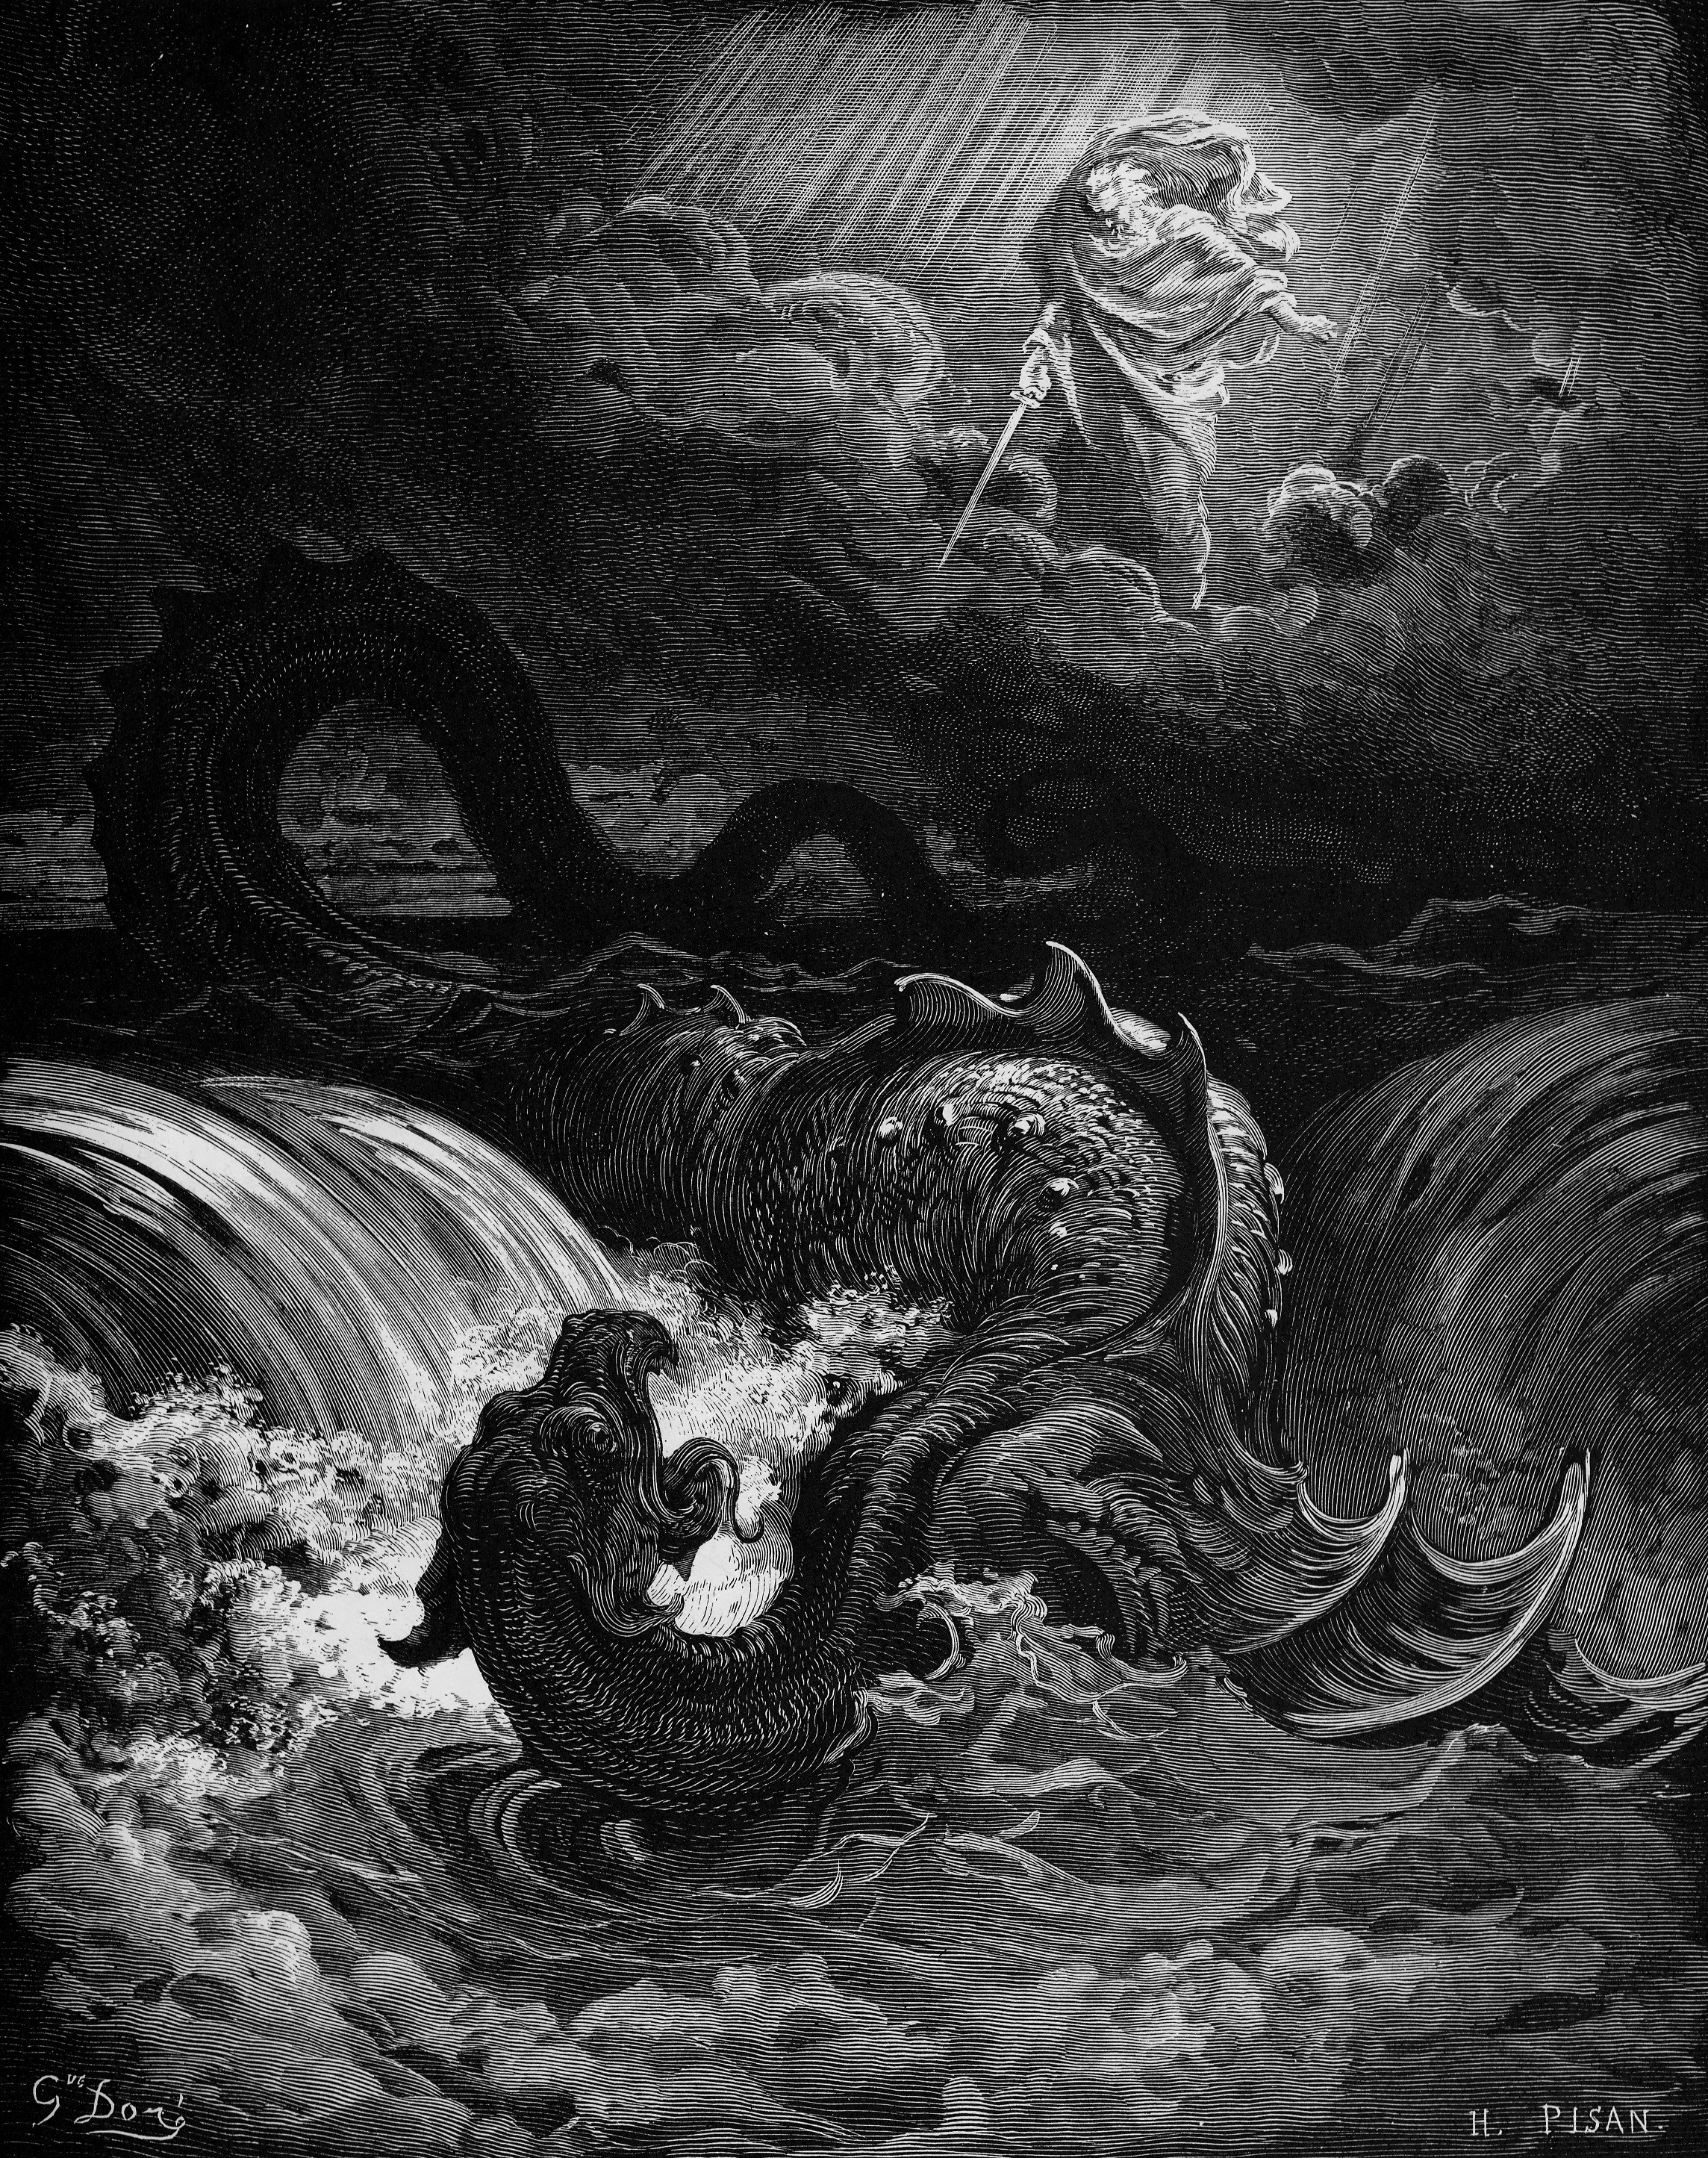 File:Destruction of Leviathan.png - Wikipedia, the free encyclopedia